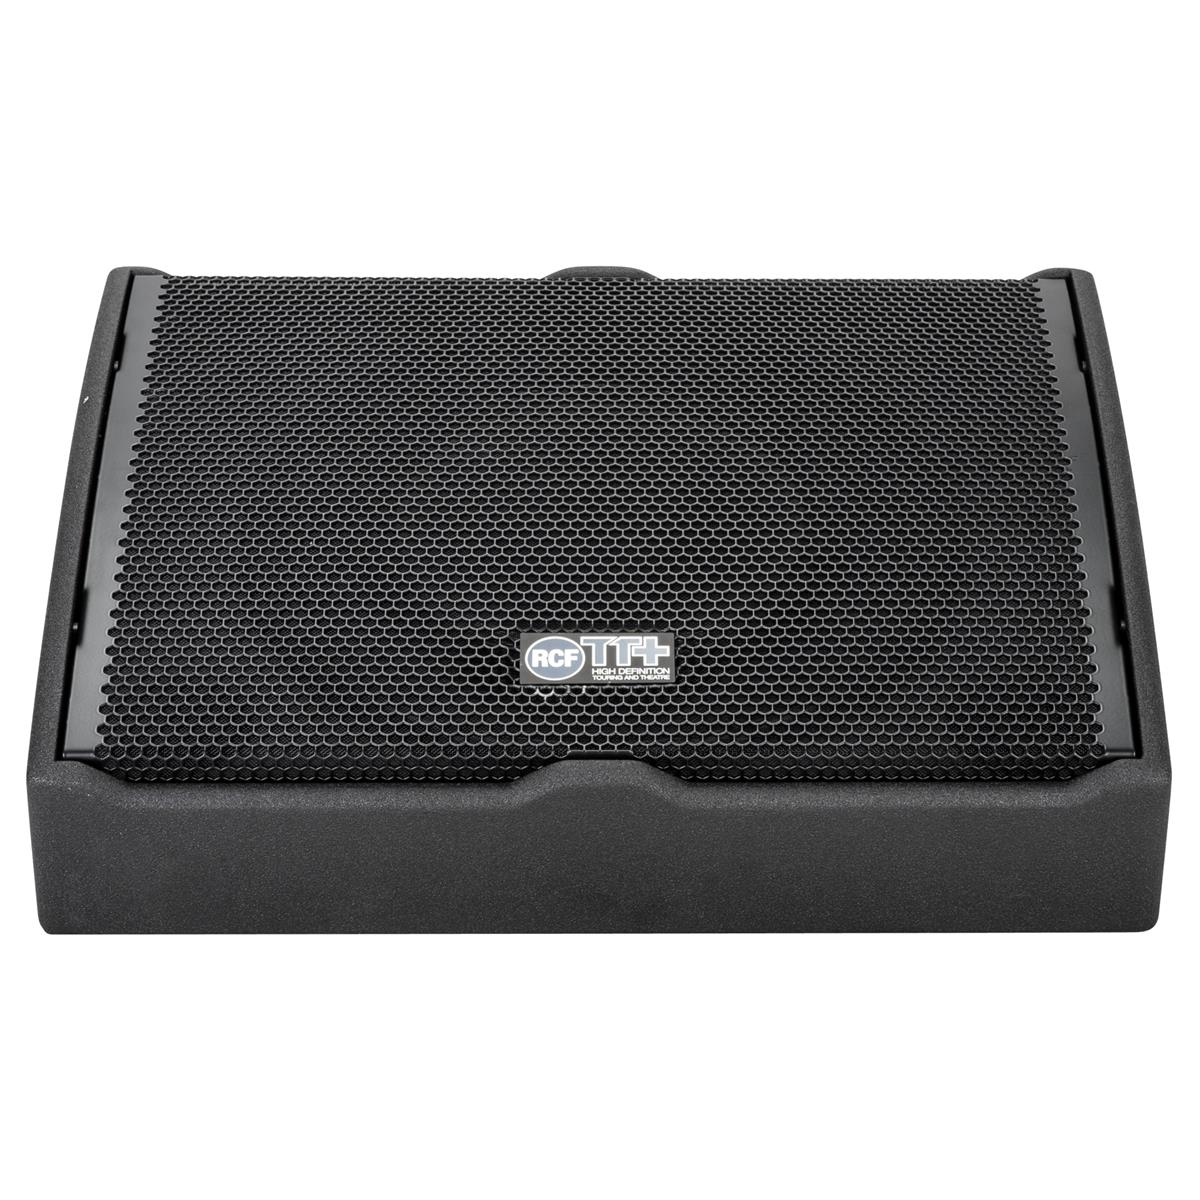 RCF TT 25-CXA Active coaxial stage monitor 15in+1,5 (2,5inVC